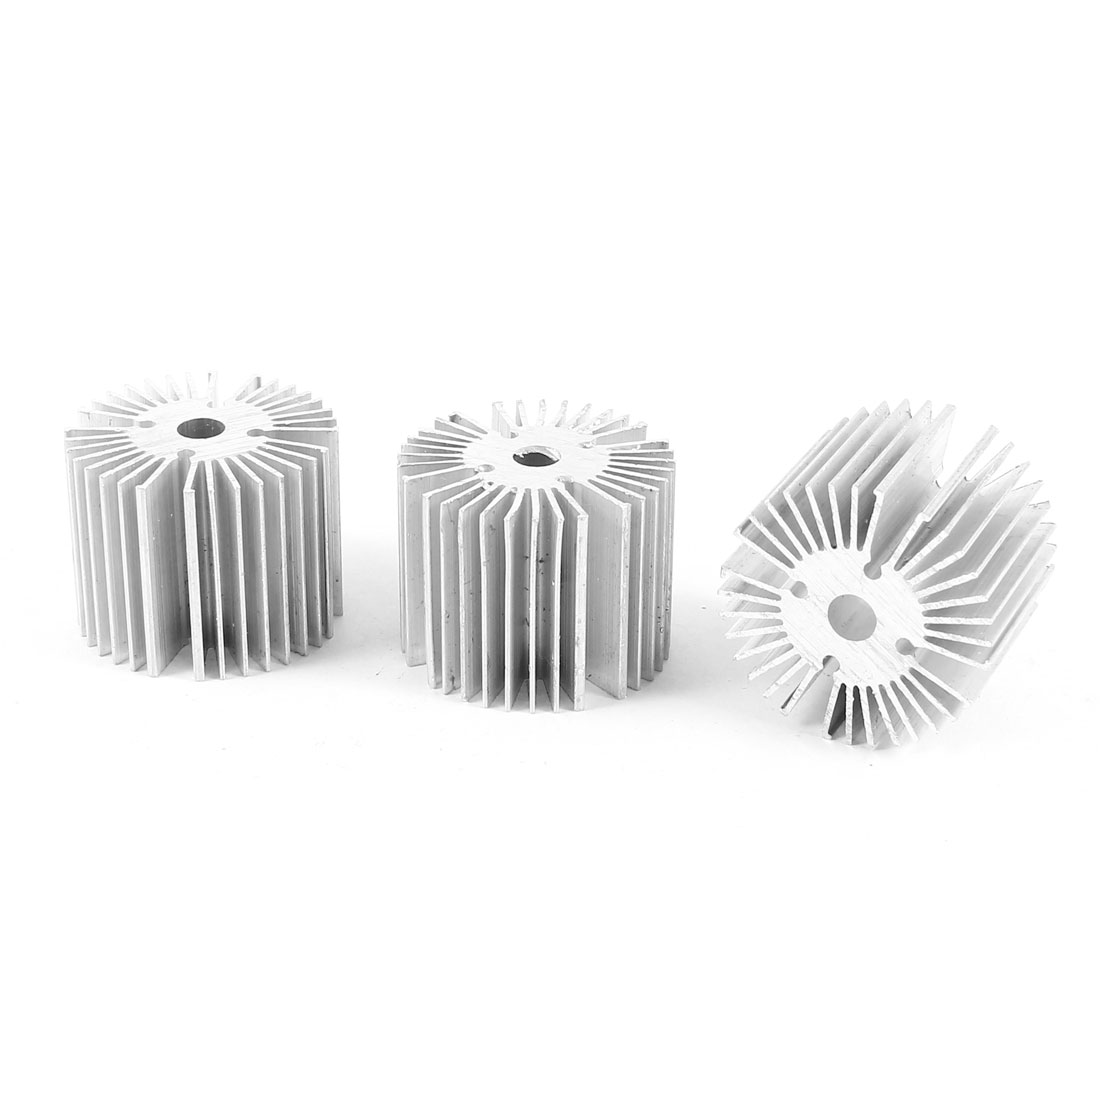 3 Pcs Round Shaped 39mm OD 6.5mm ID 30mm Height LED Light Heat Sinks Cooling Fin